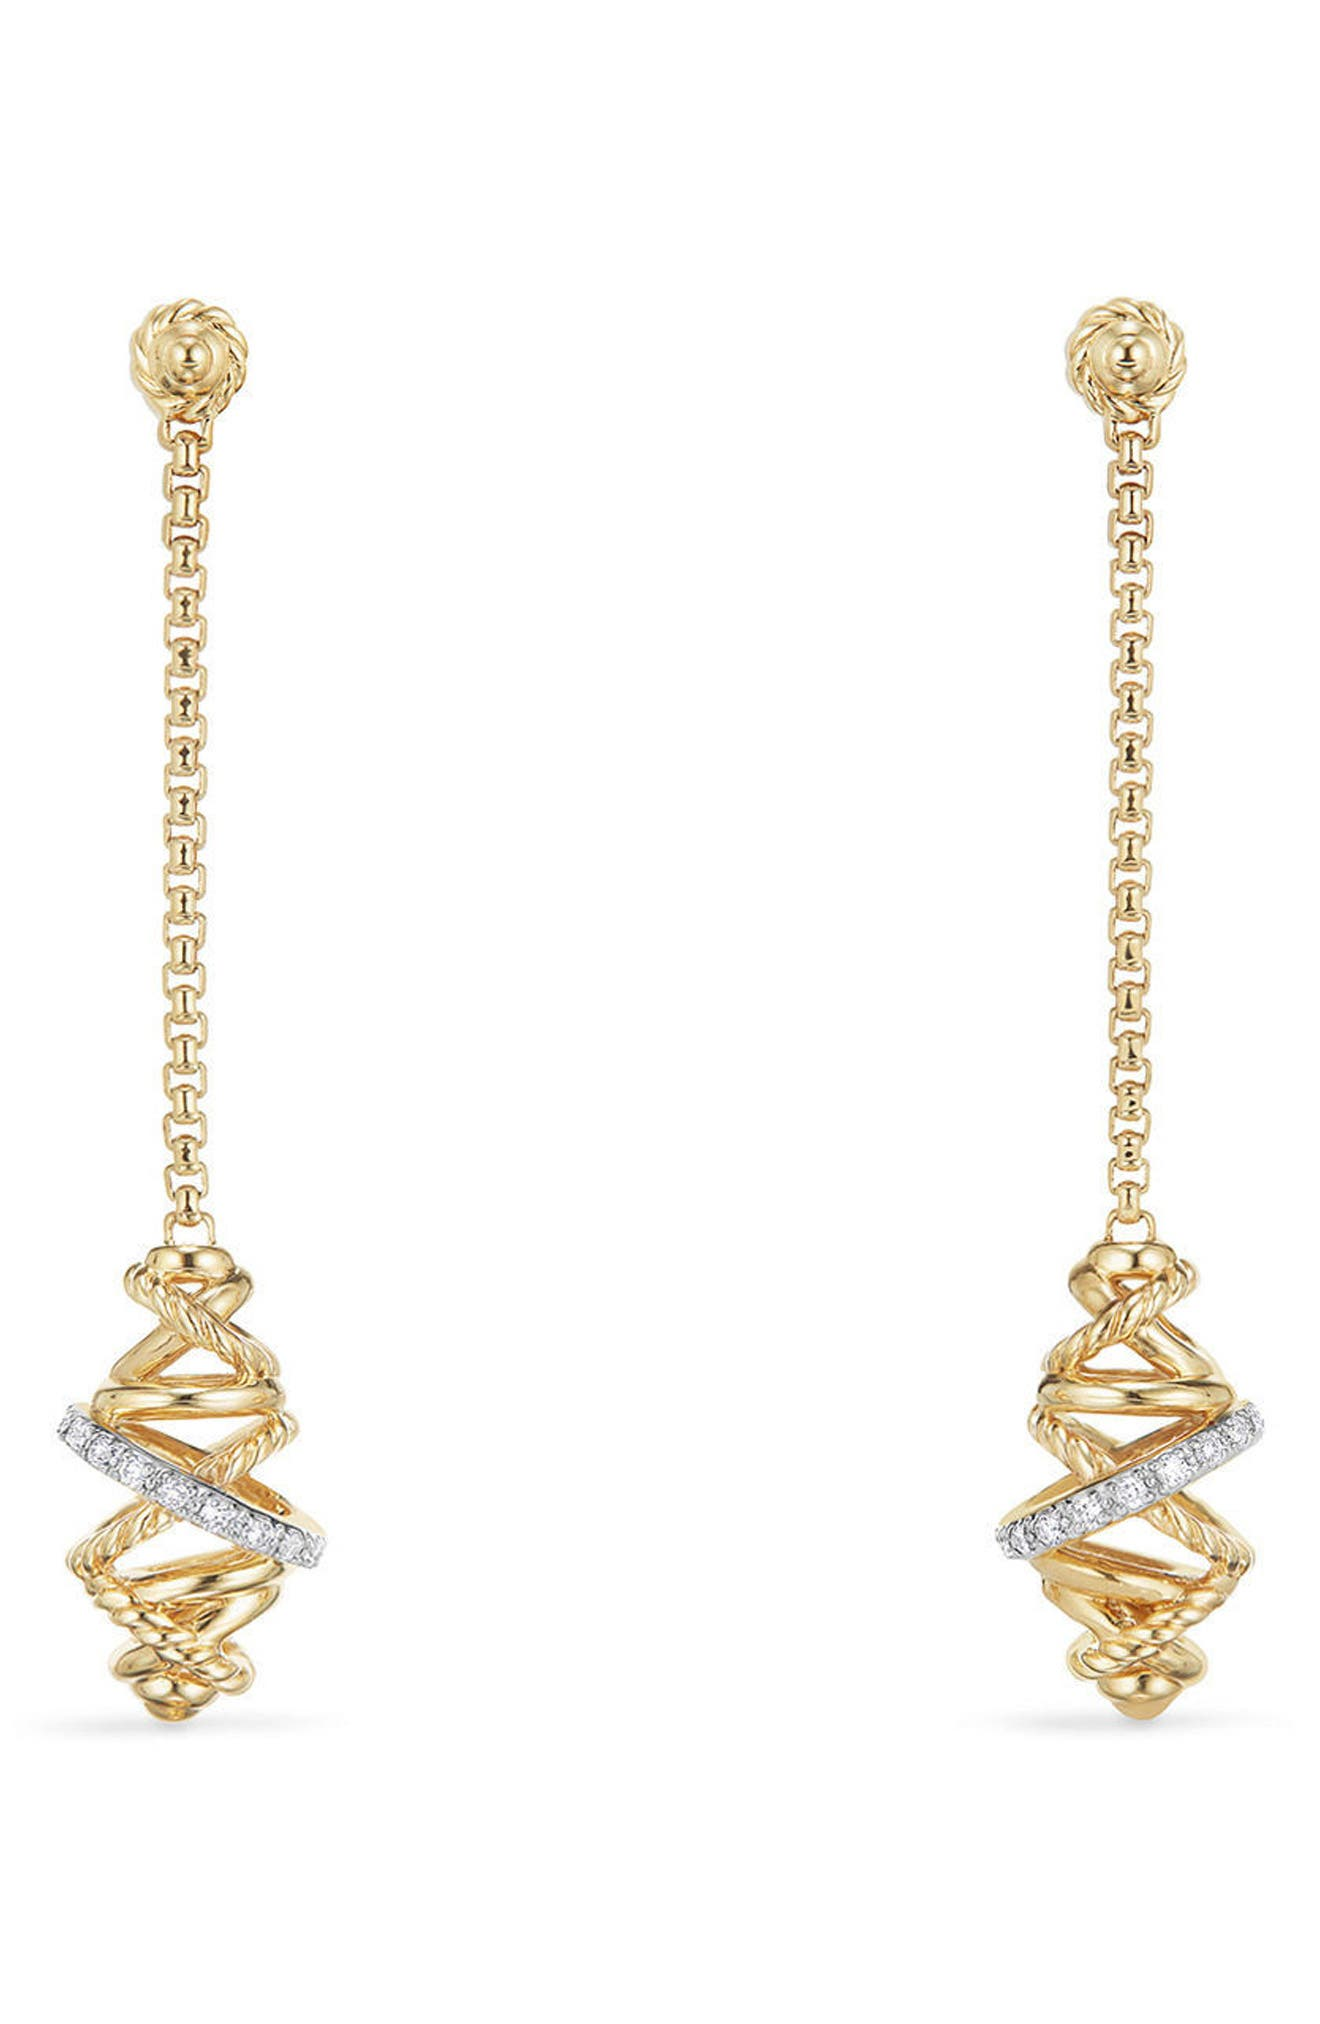 Crossover Chain Drop Earrings with Diamonds in 18K Gold,                         Main,                         color, YELLOW GOLD/ DIAMOND